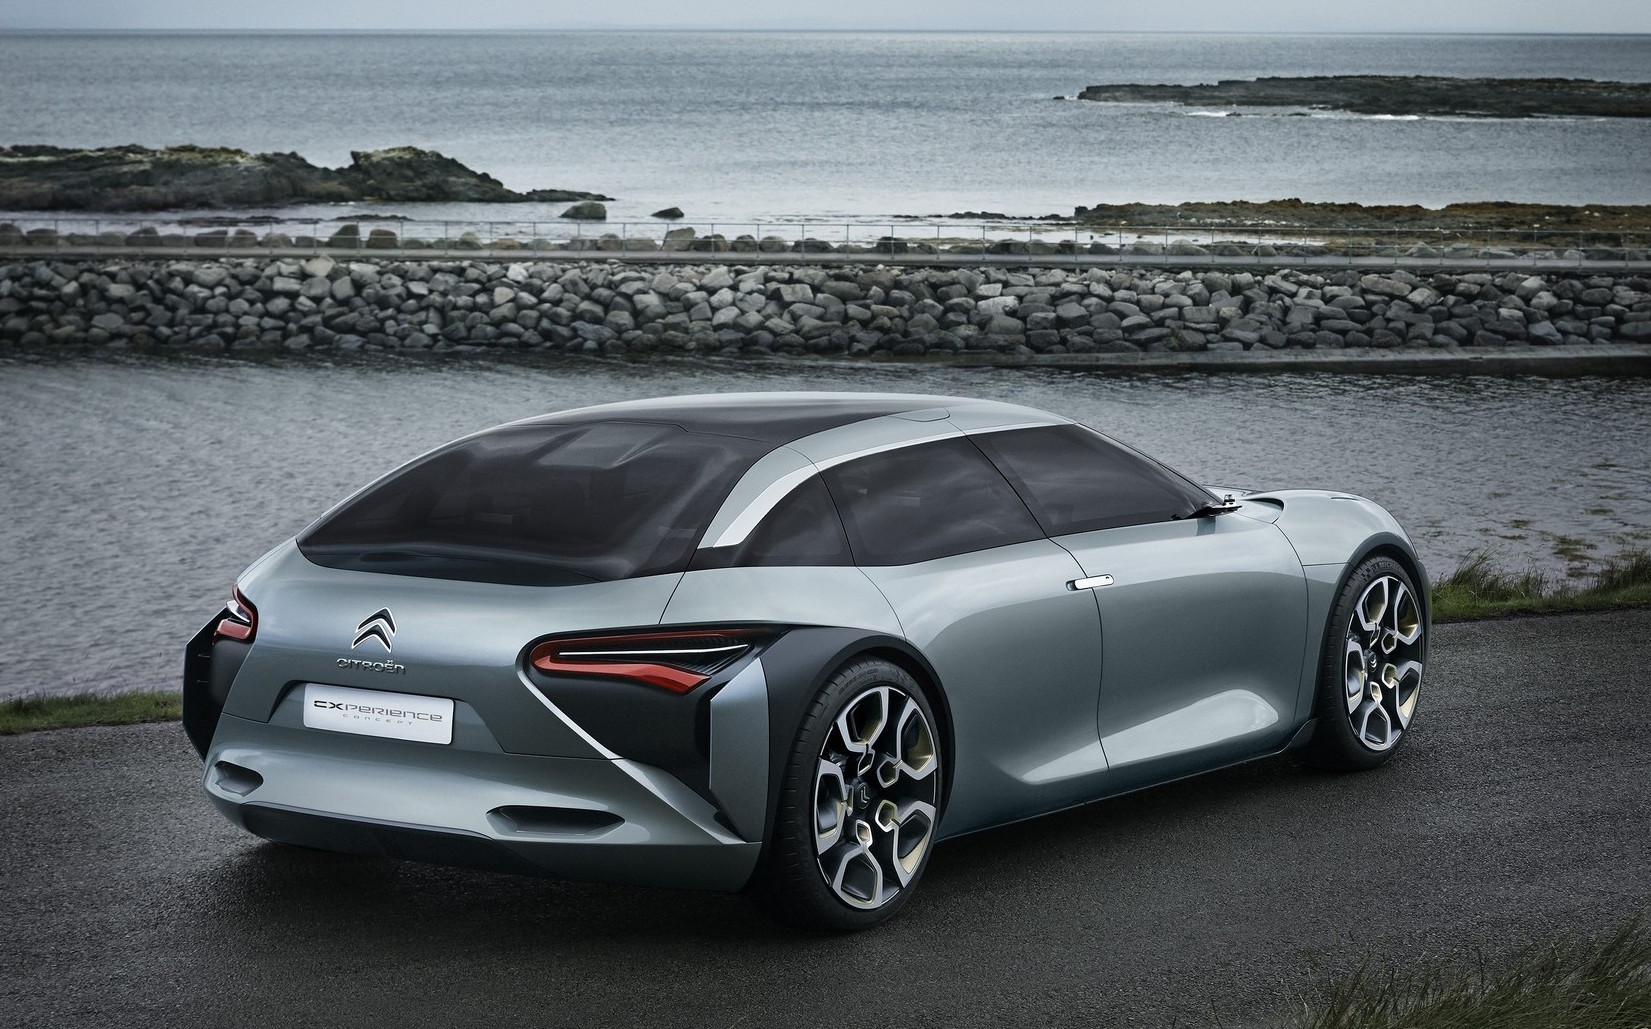 Plug-in hybrid Citroen CXPERIENCE CONCEPT teased ahead of Paris Motor Show